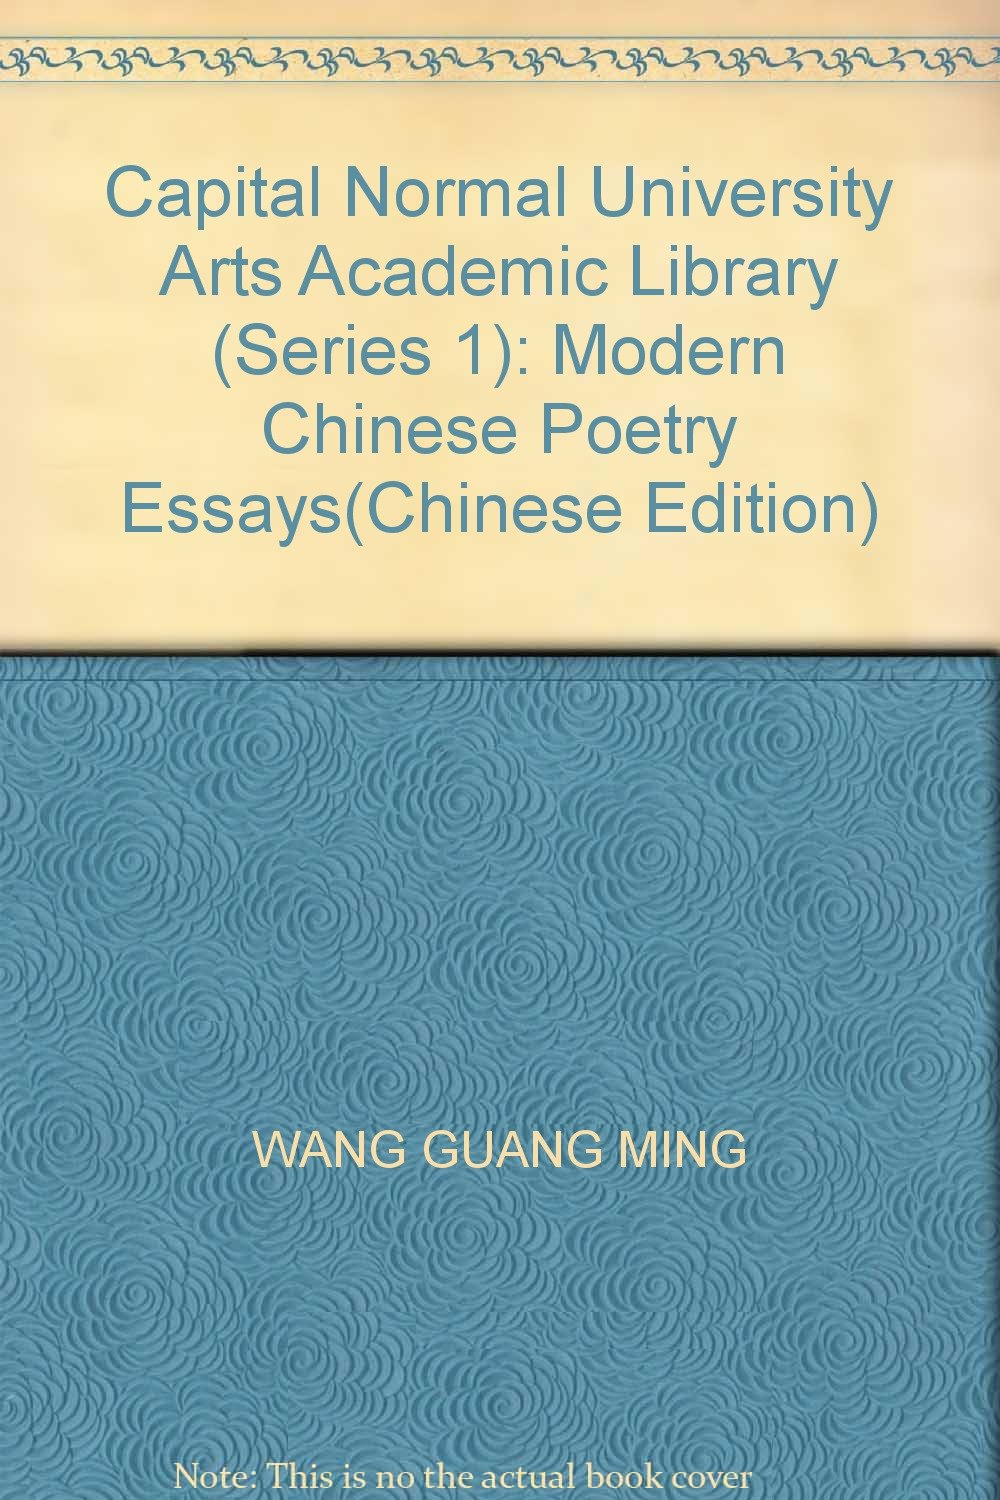 Capital Normal University Arts Academic Library (Series 1): Modern Chinese Poetry Essays(Chinese Edition) pdf